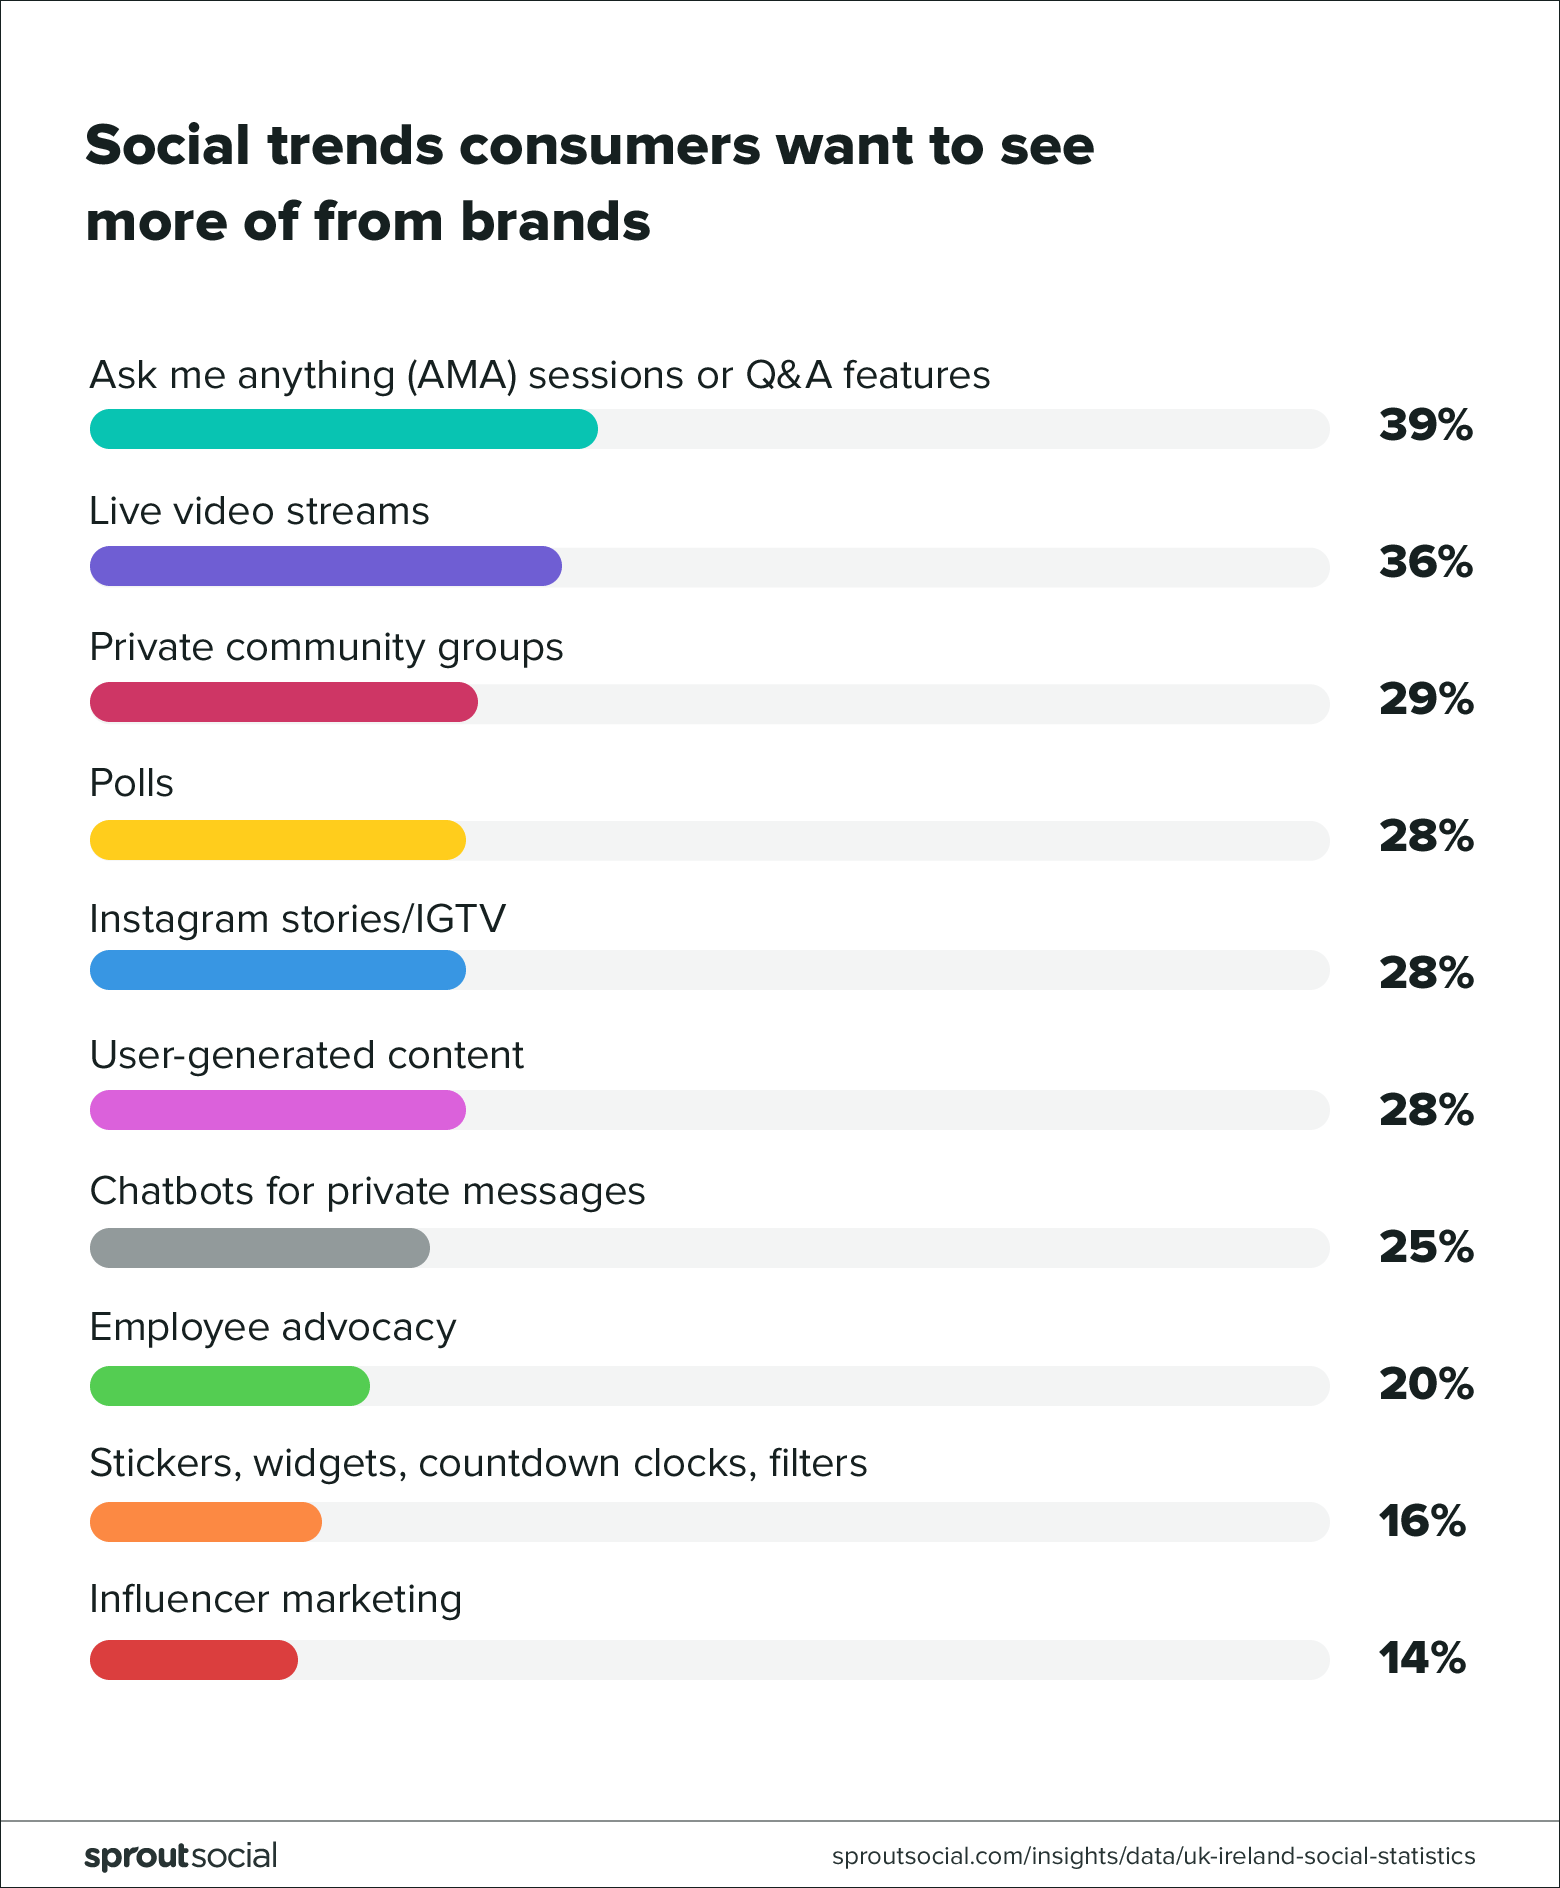 Social trends consumers want to see more of from brands